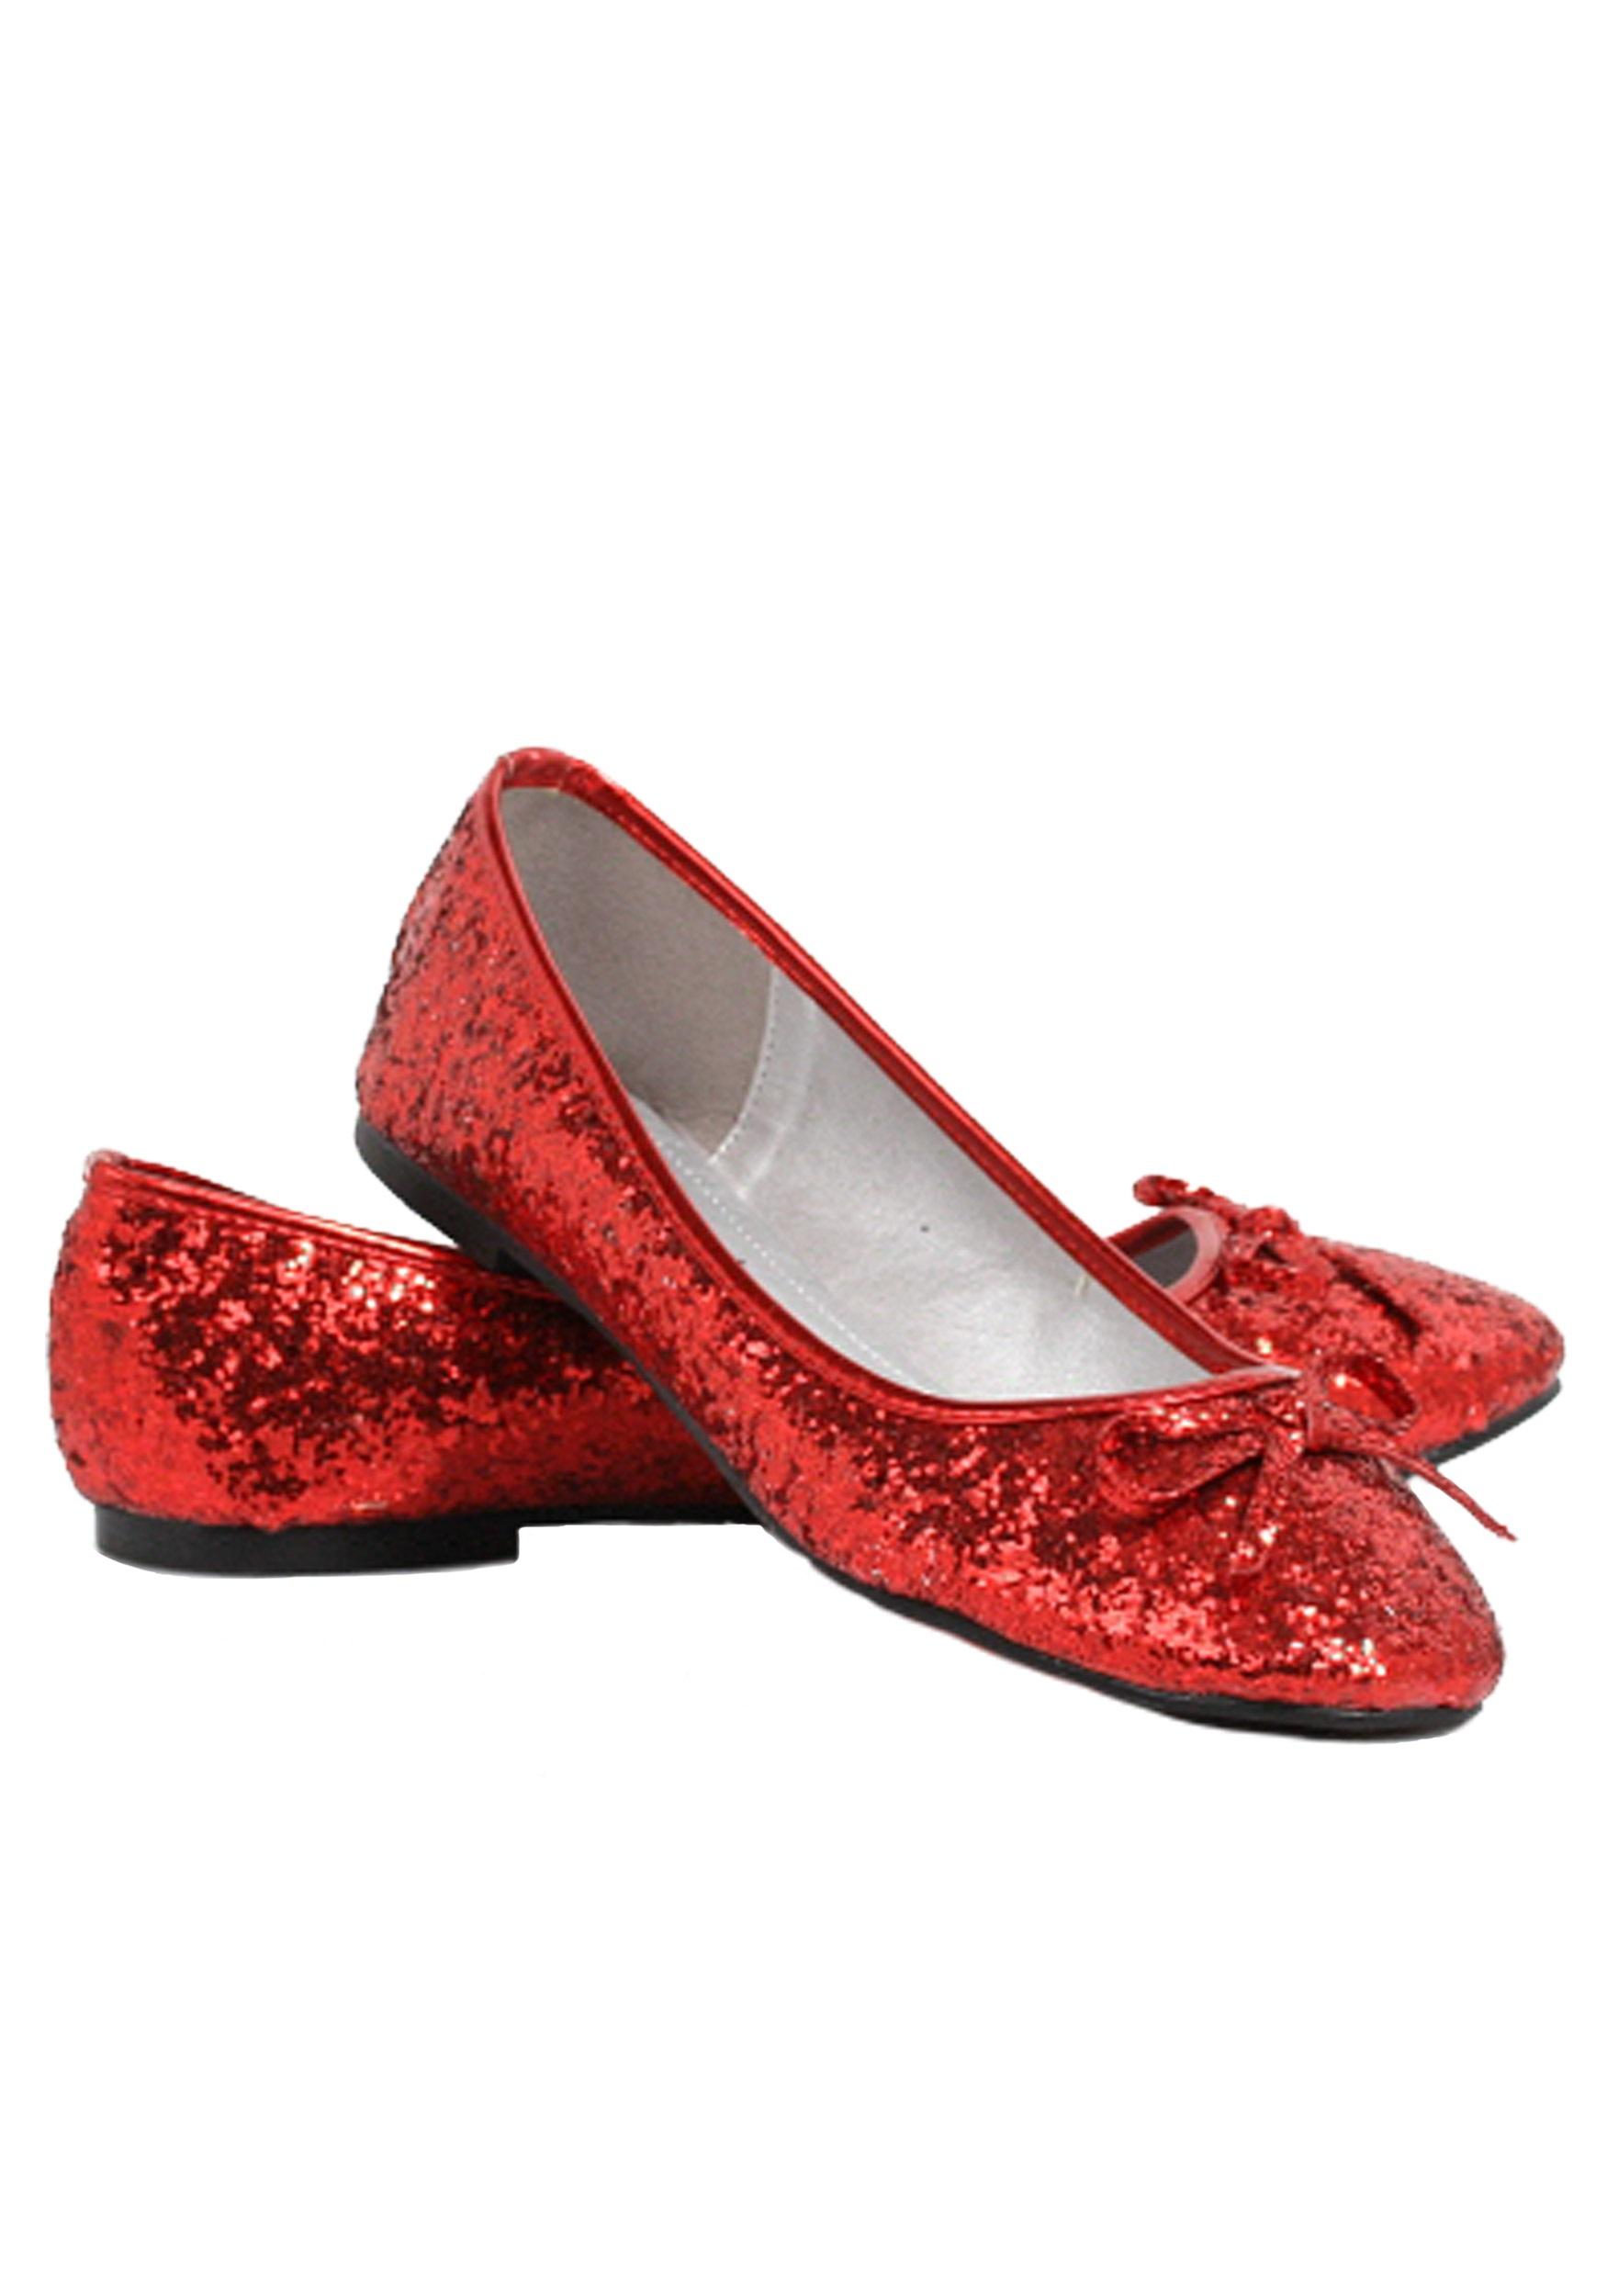 Red Glitter Flats | Red Sparkly Shoes